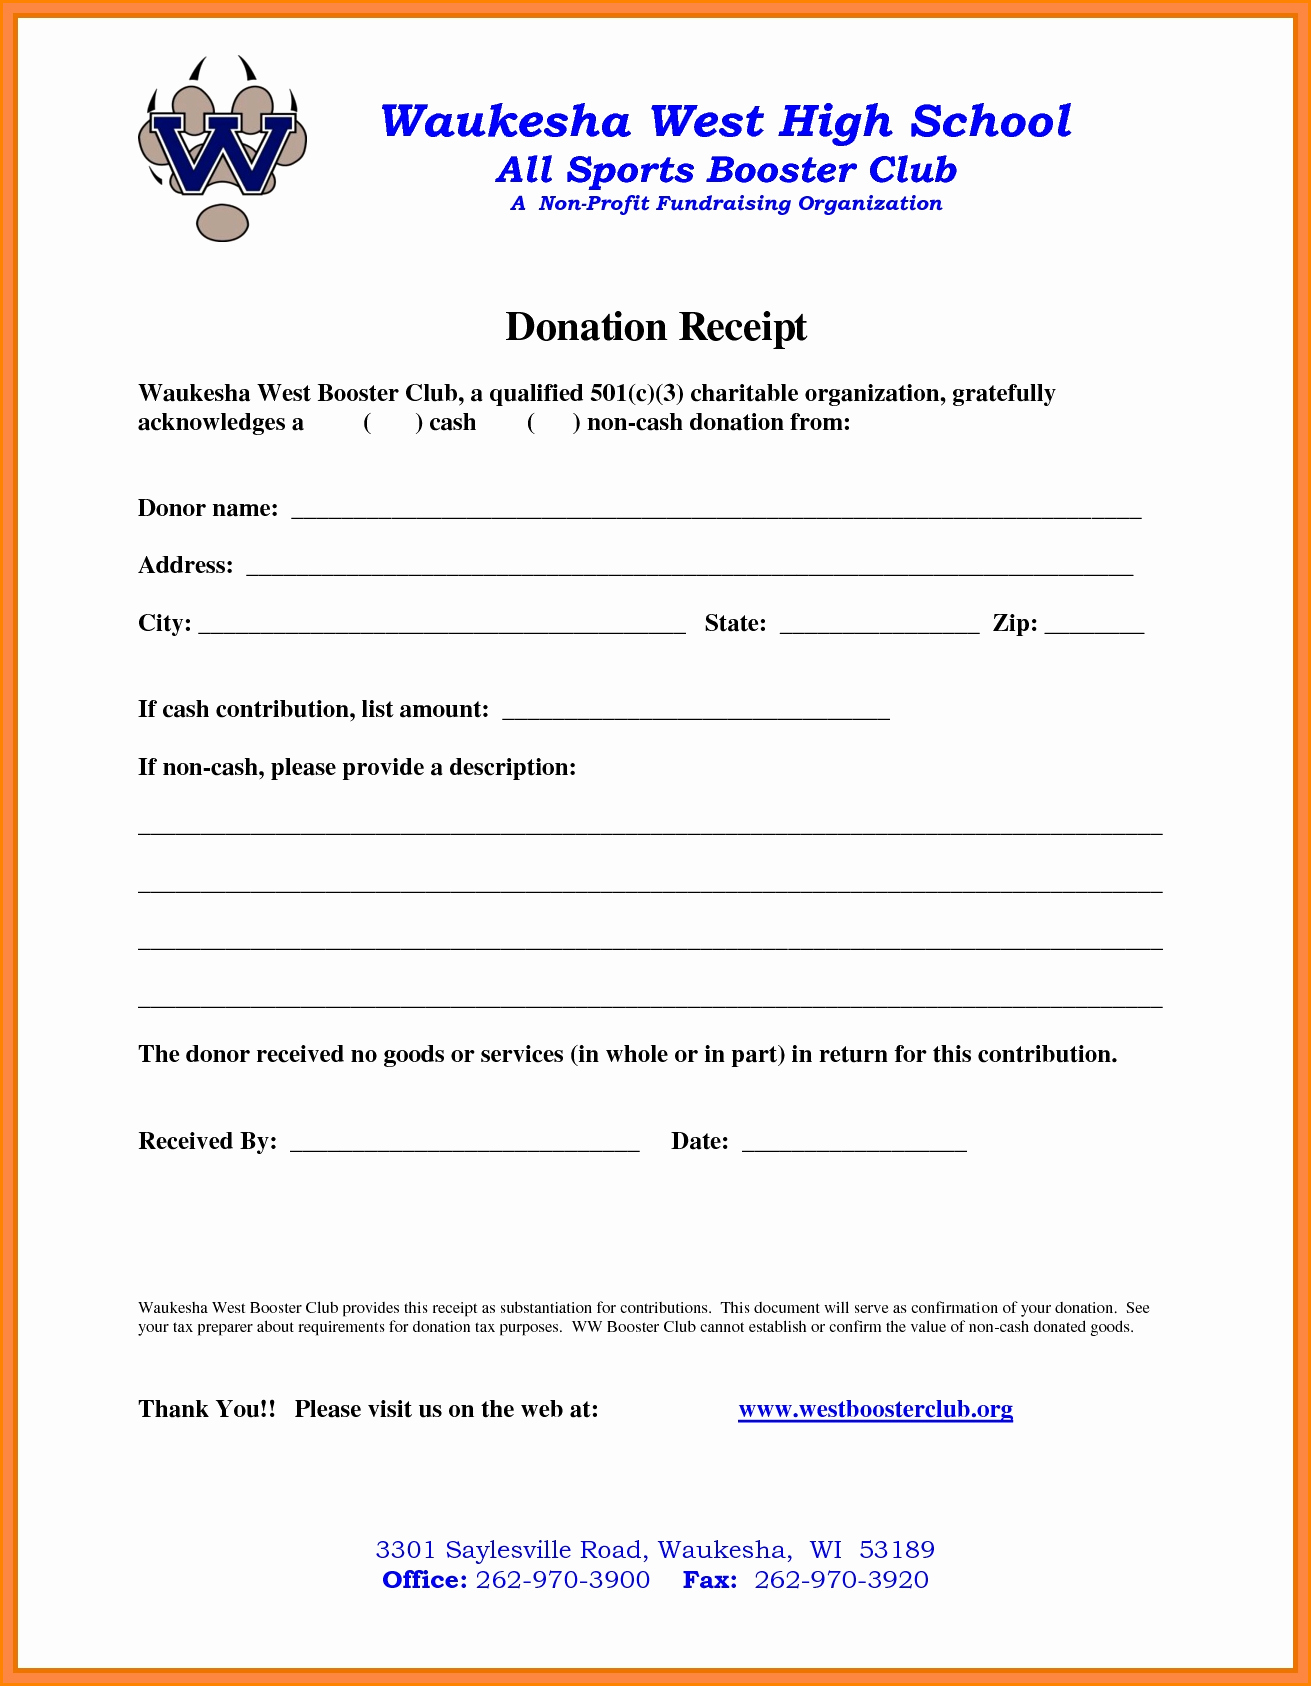 Tax Deductible Donation Receipt Template Inspirational 5 501c3 Donation Receipt